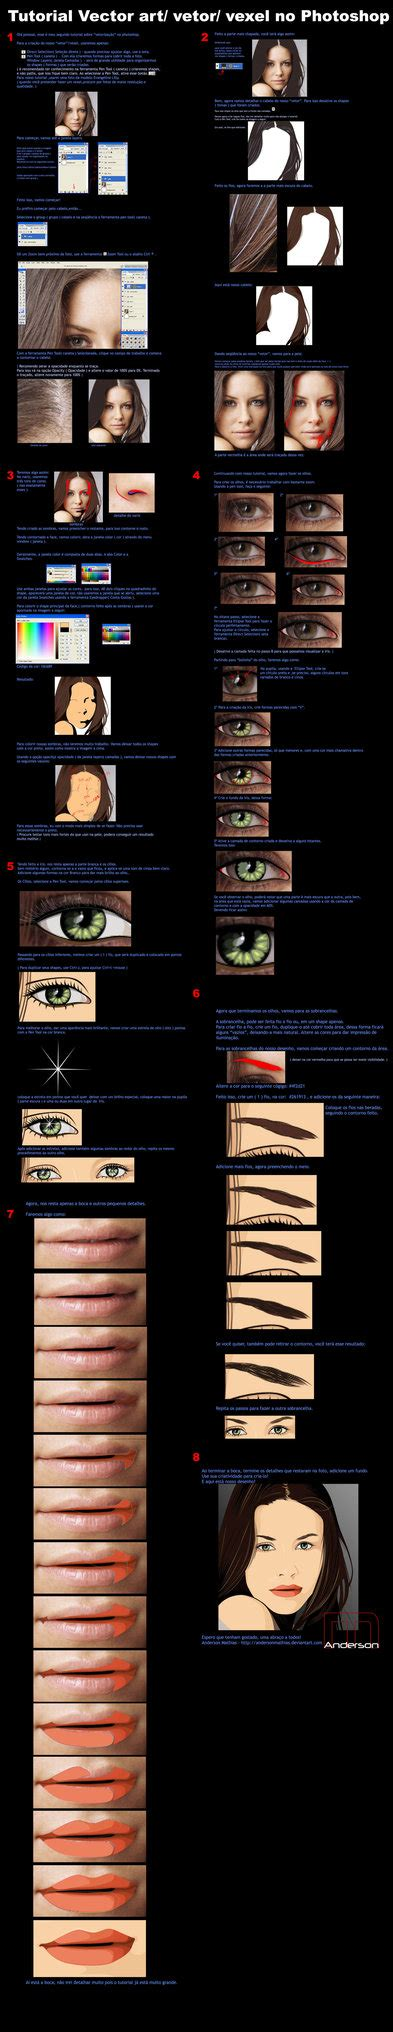 vector art tutorial photoshop cc tutorial vector art photoshop by andersonmathias on deviantart